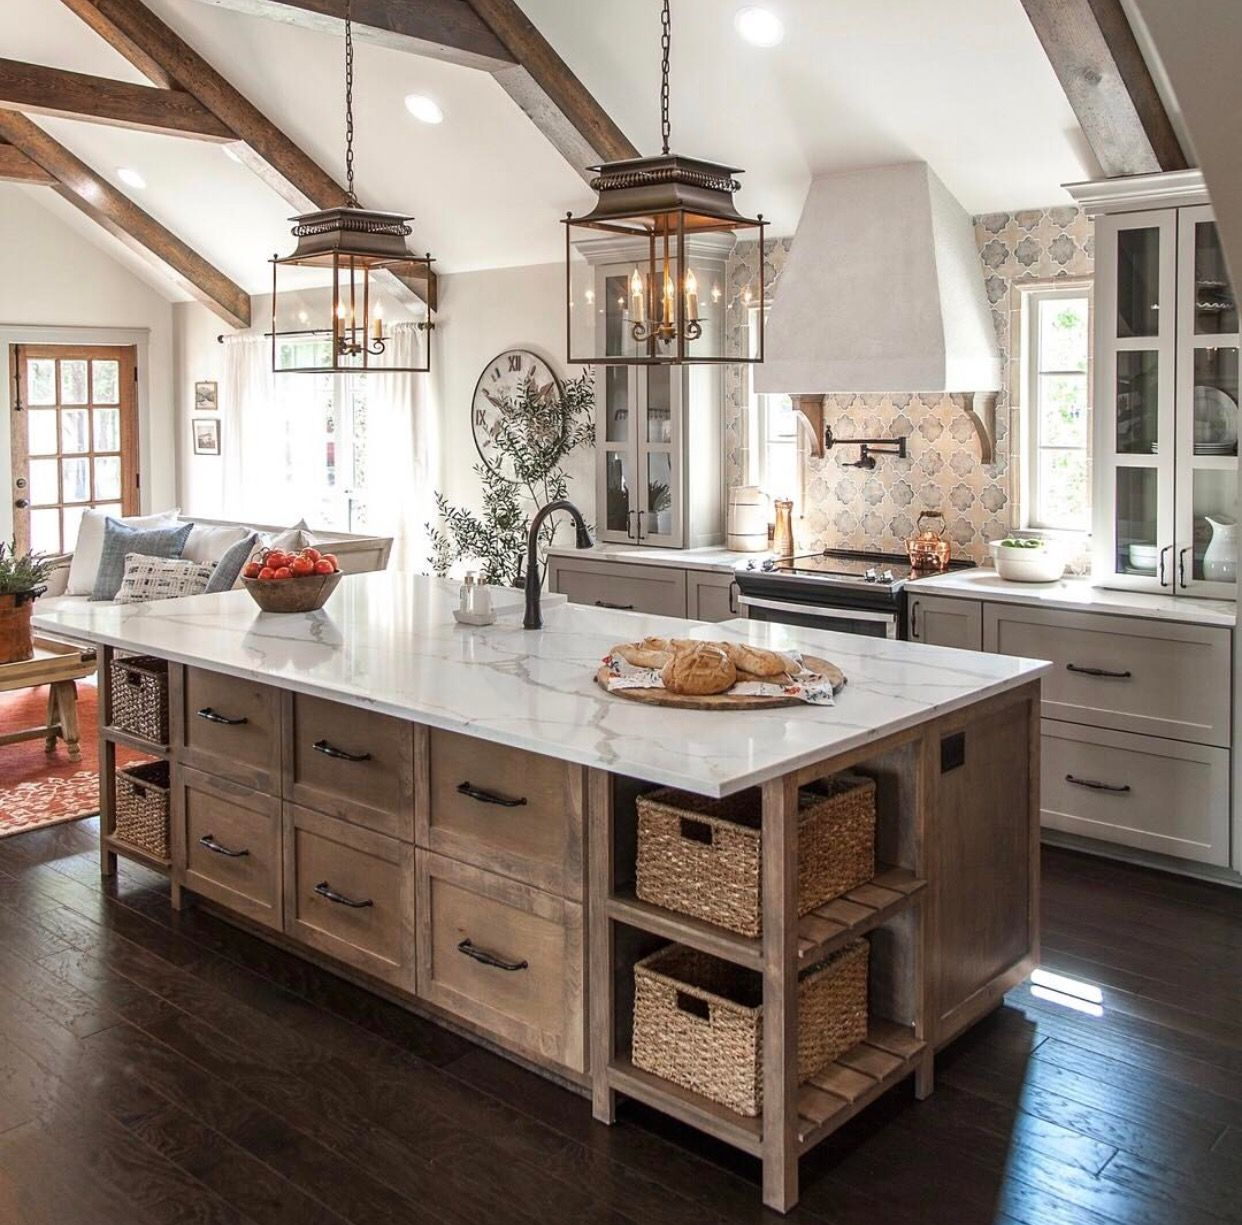 lt wood cabinets flanking white cooktop cabinet similar to farmhouse kitchen design on kitchen cabinets farmhouse style id=34729